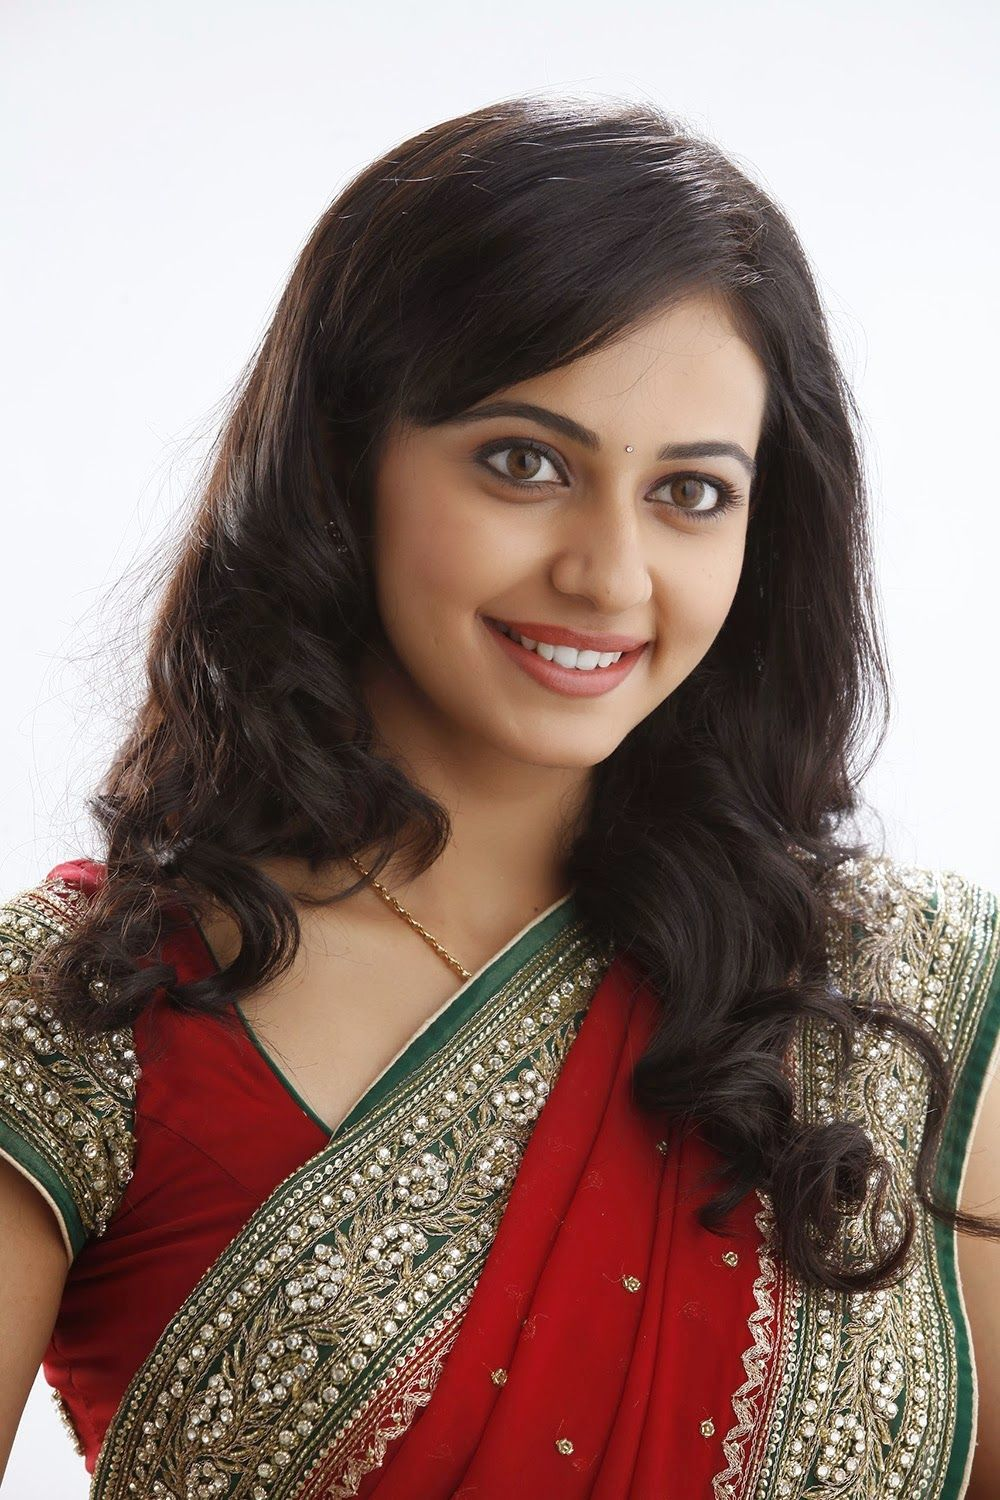 rakul preet singh hd wallpapers (65 wallpapers) – adorable